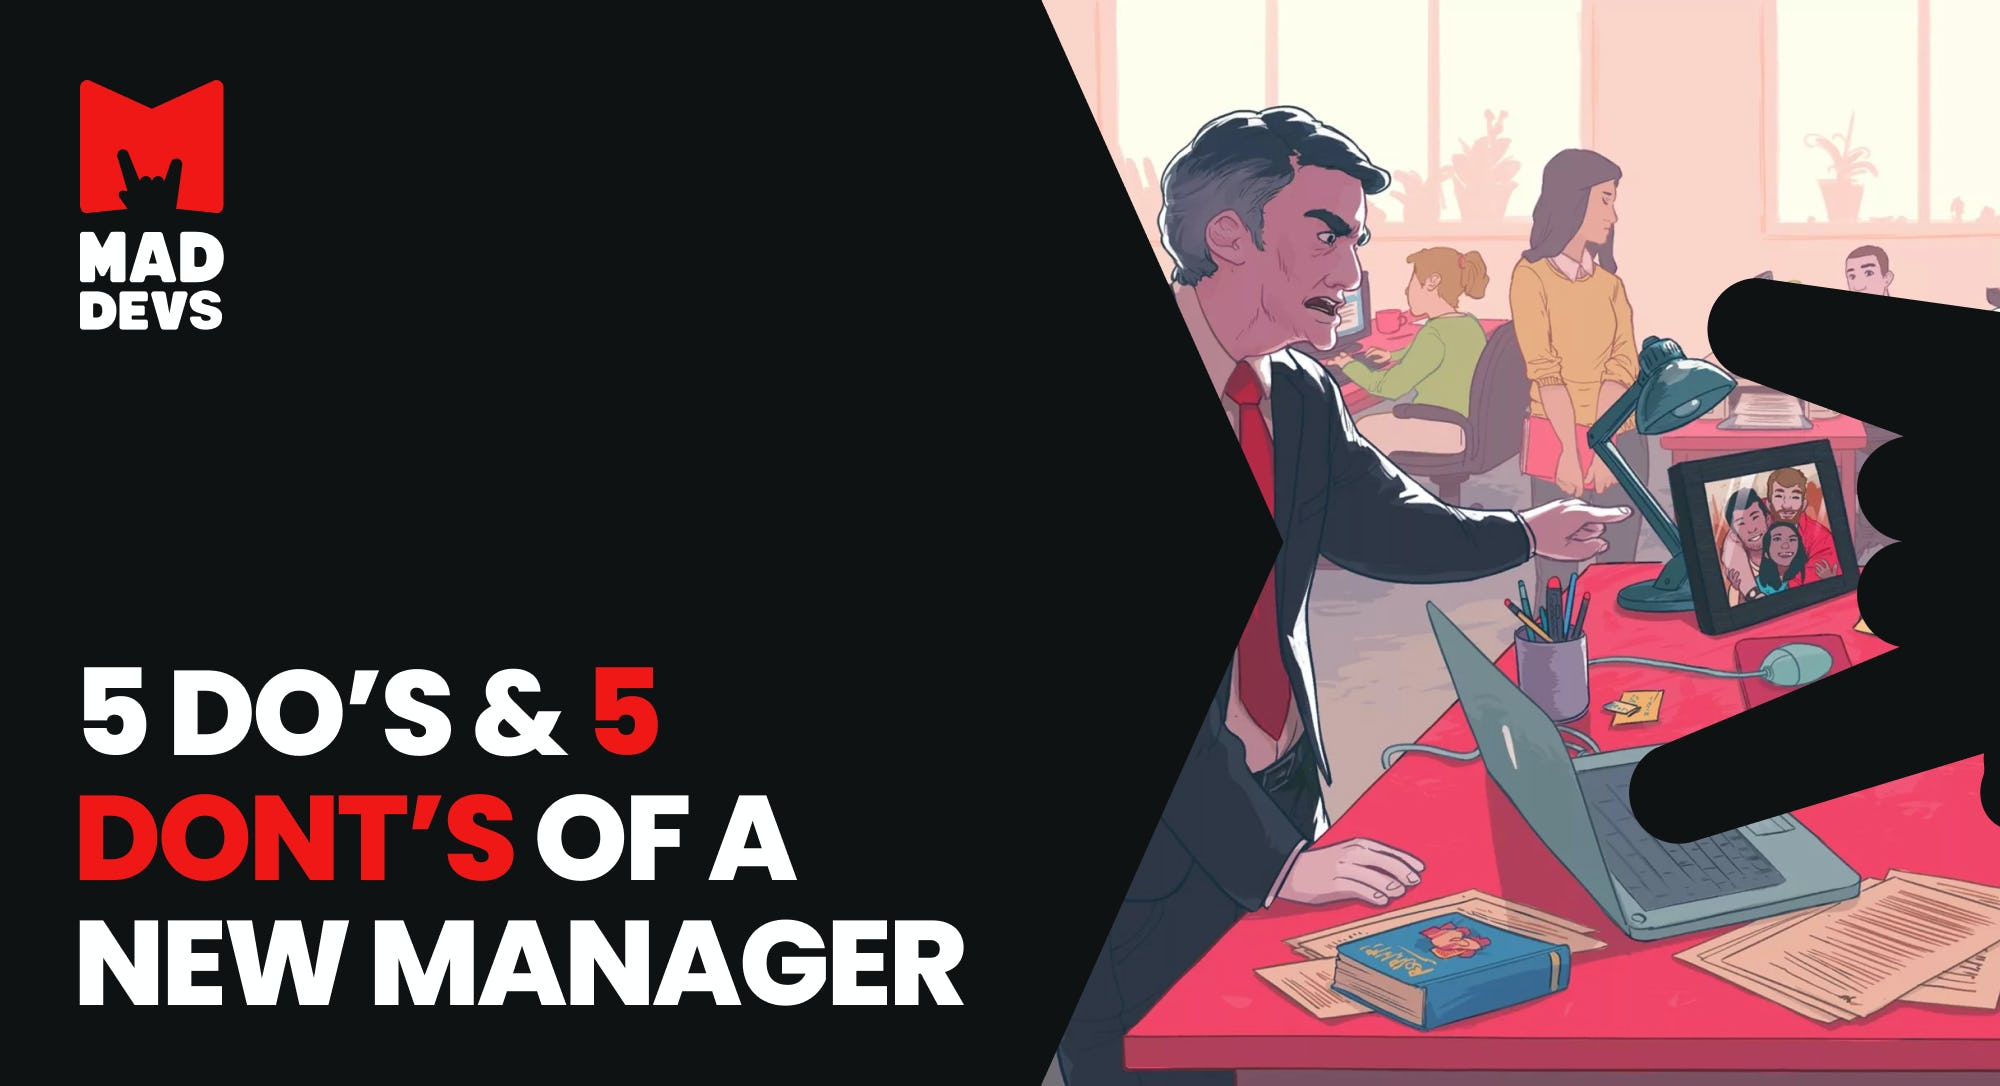 5 DOs & 5 DON'Ts of a New Manager.